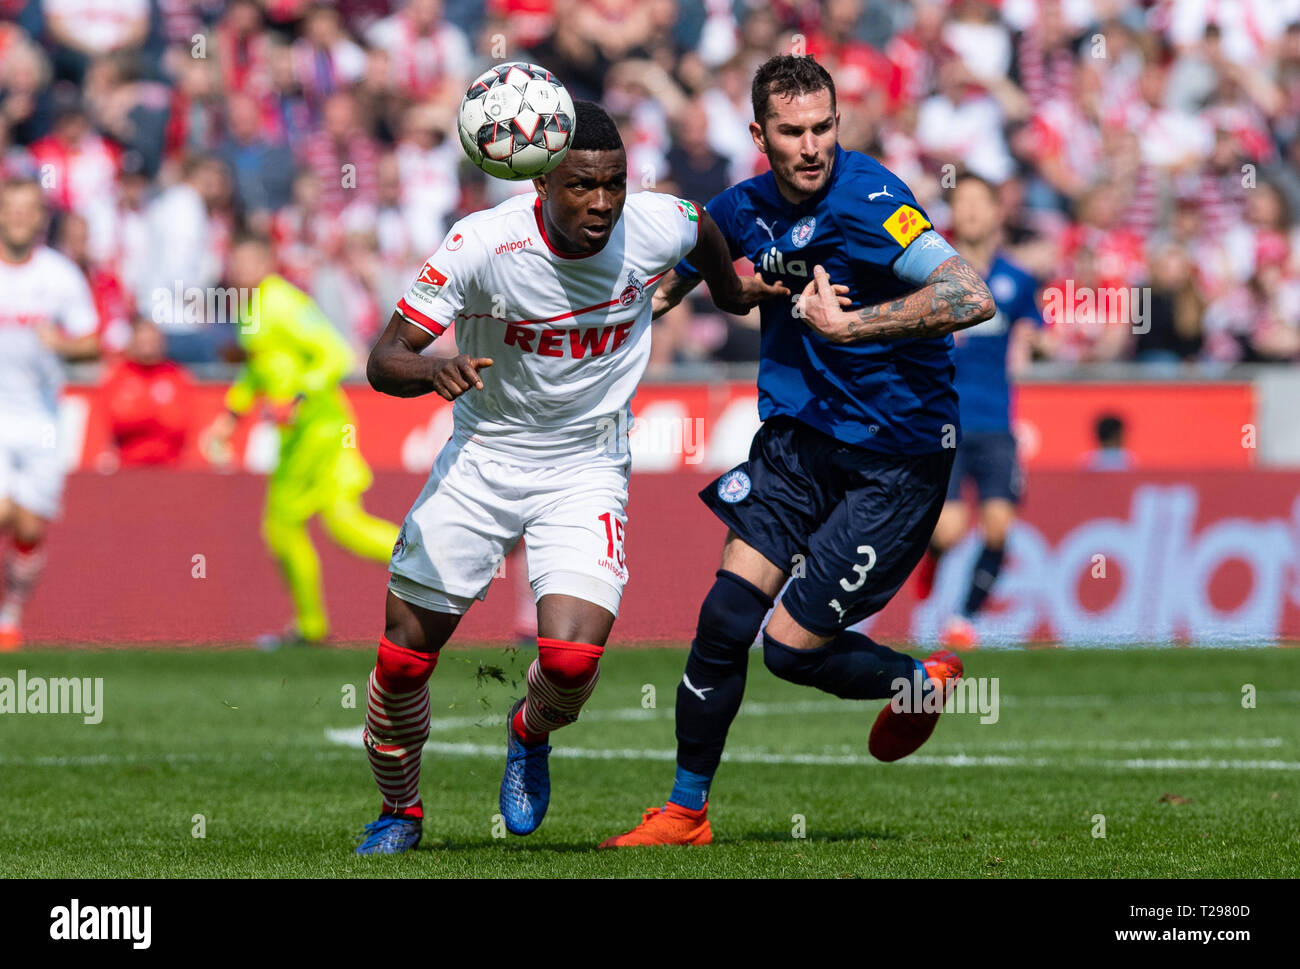 Cologne, Germany. 31st Mar, 2019.  Soccer: 2nd Bundesliga, 1st FC Cologne - Holstein Kiel, 27th matchday in the Rhein-Energie-Stadion. Cologne's Jhon Cordoba (l) and Kiel's Dominik Schmidt fight for the ball. Photo: Guido Kirchner/dpa - IMPORTANT NOTE: In accordance with the requirements of the DFL Deutsche Fußball Liga or the DFB Deutscher Fußball-Bund, it is prohibited to use or have used photographs taken in the stadium and/or the match in the form of sequence images and/or video-like photo sequences. Credit: dpa picture alliance/Alamy Live News Stock Photo